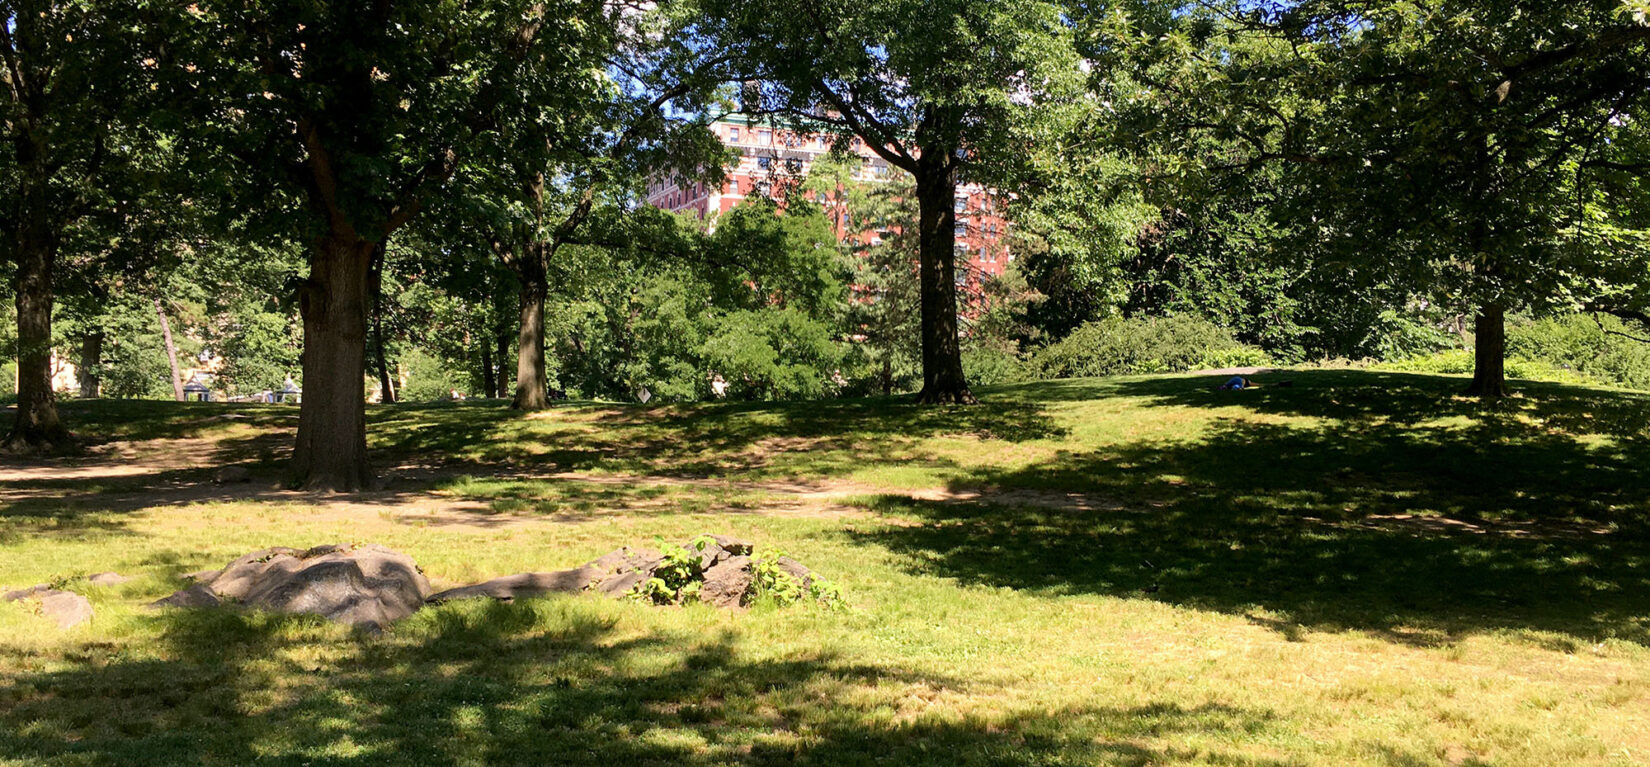 The site of Seneca Village in the present day Park